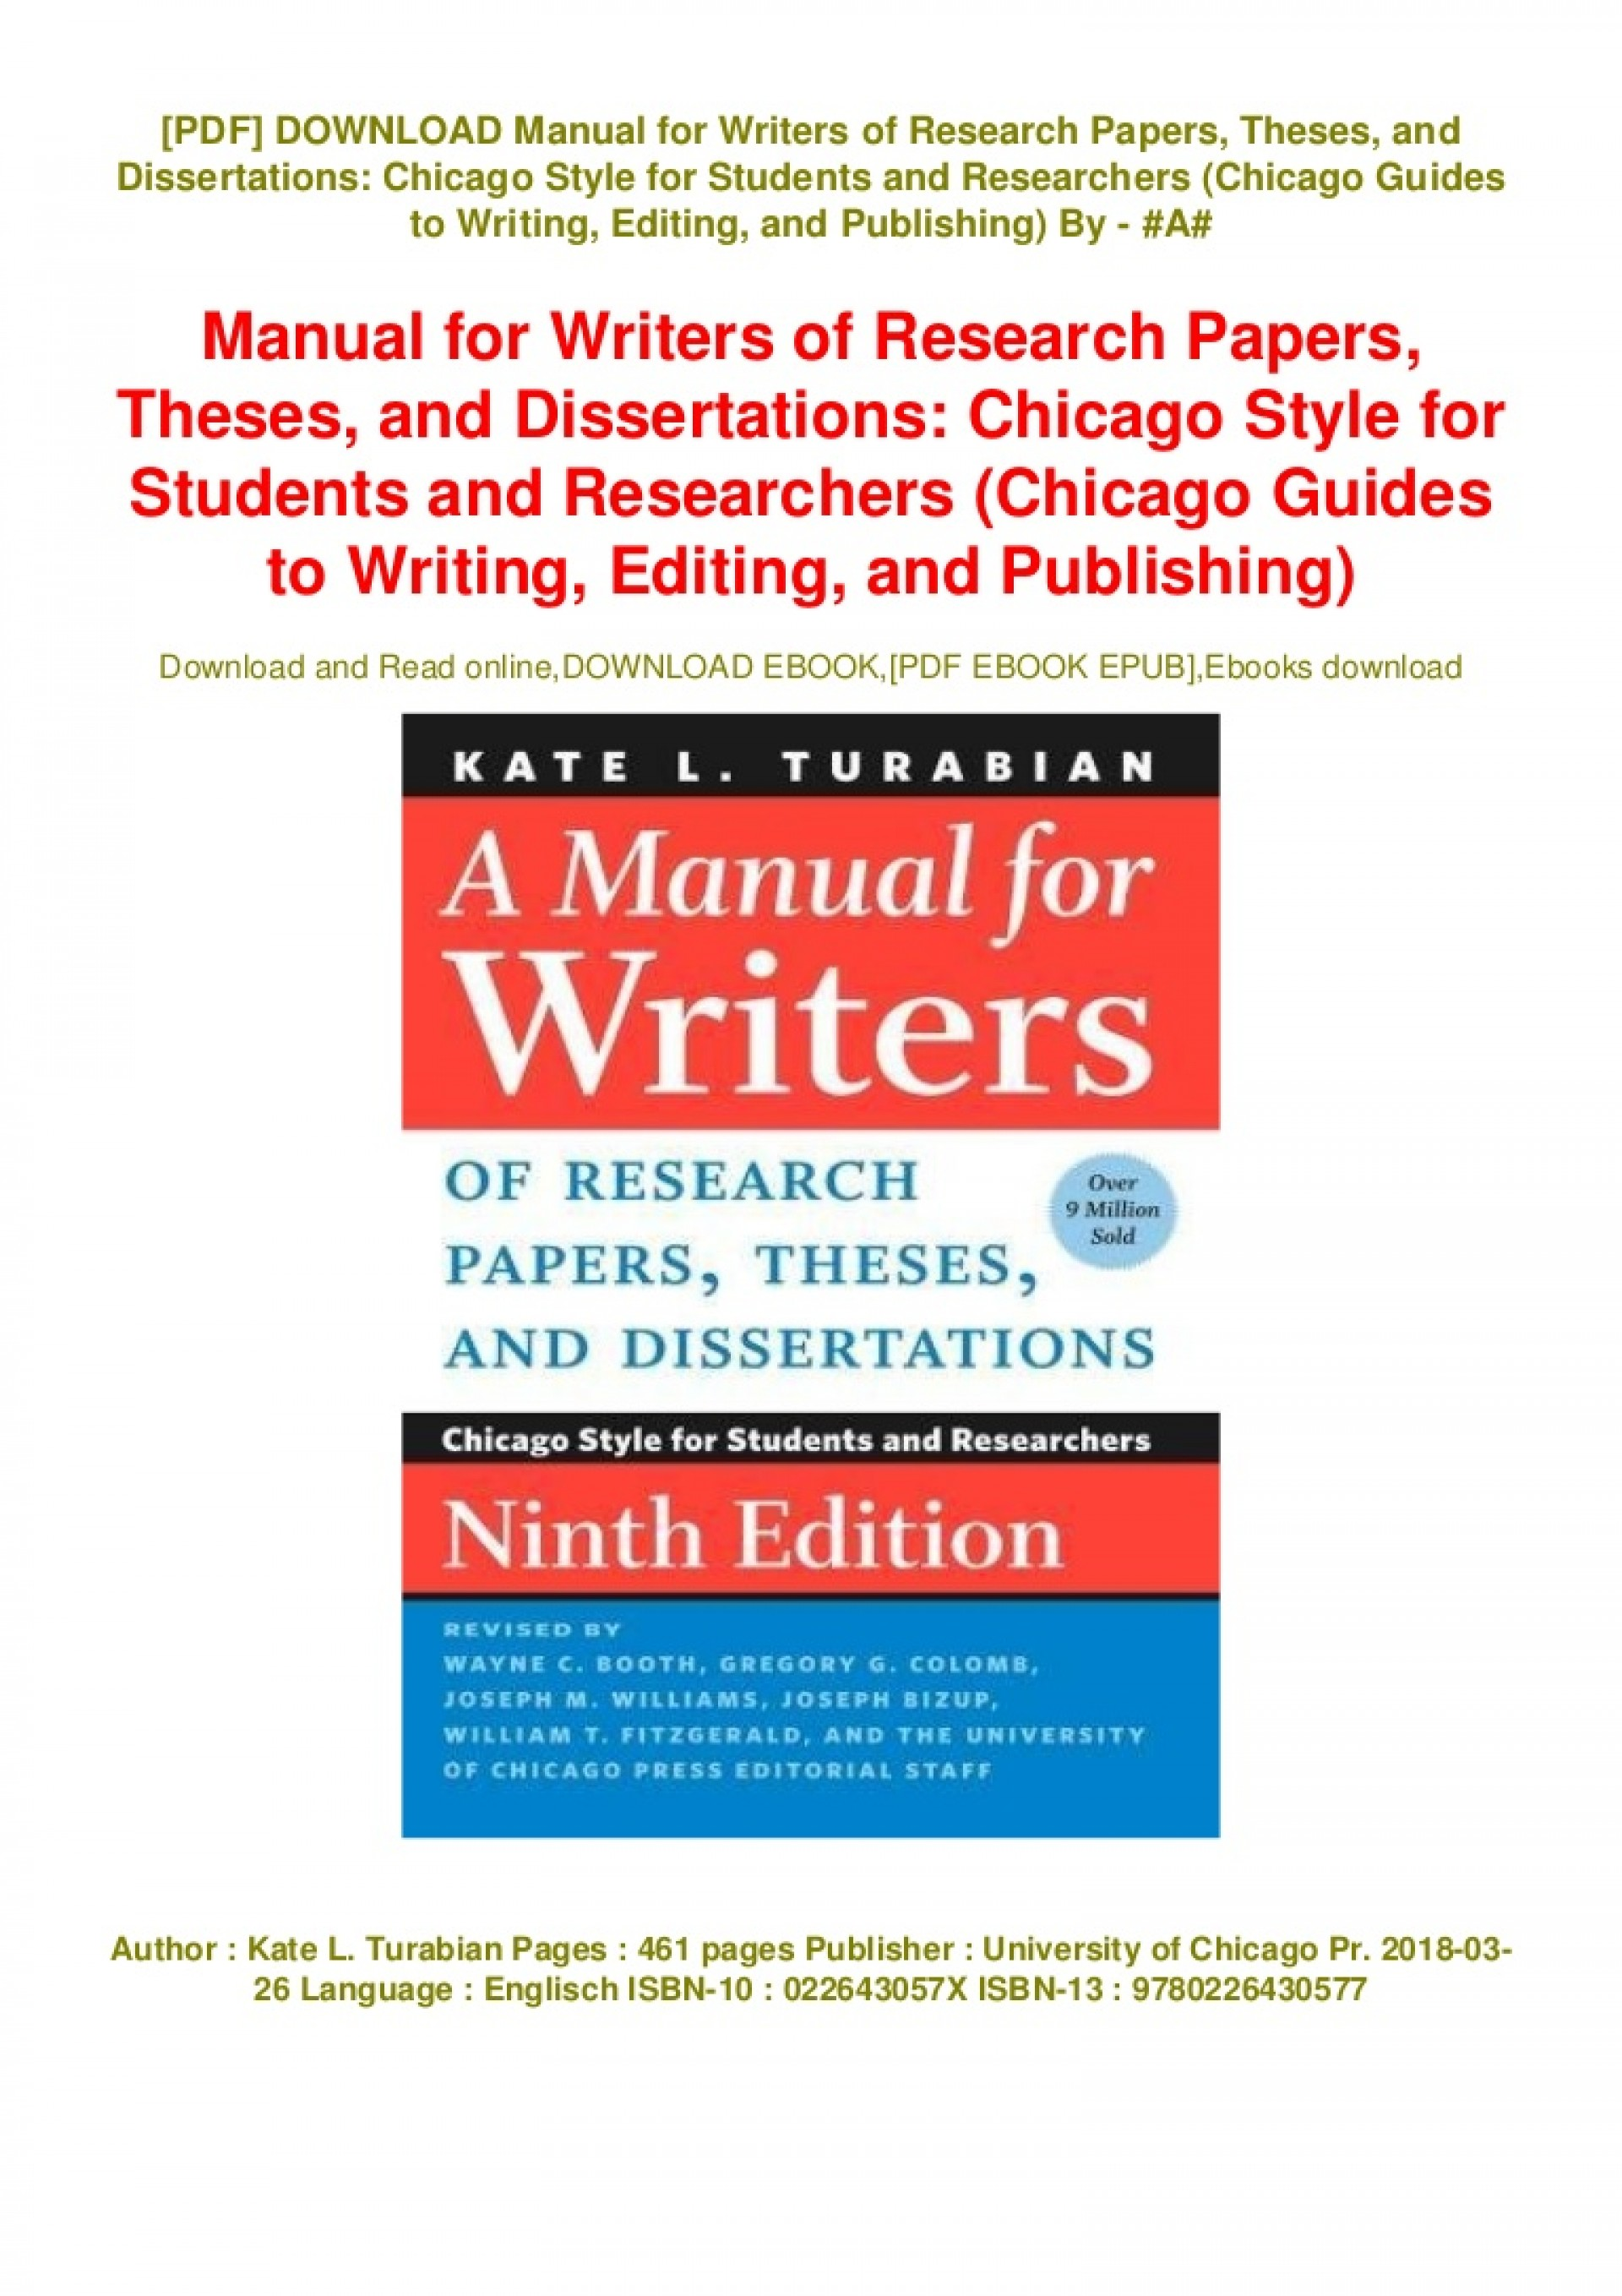 005 Manual For Writers Of Research Papers Theses And Dissertations Pdf Download Chicago Style Students Impressive A 1920